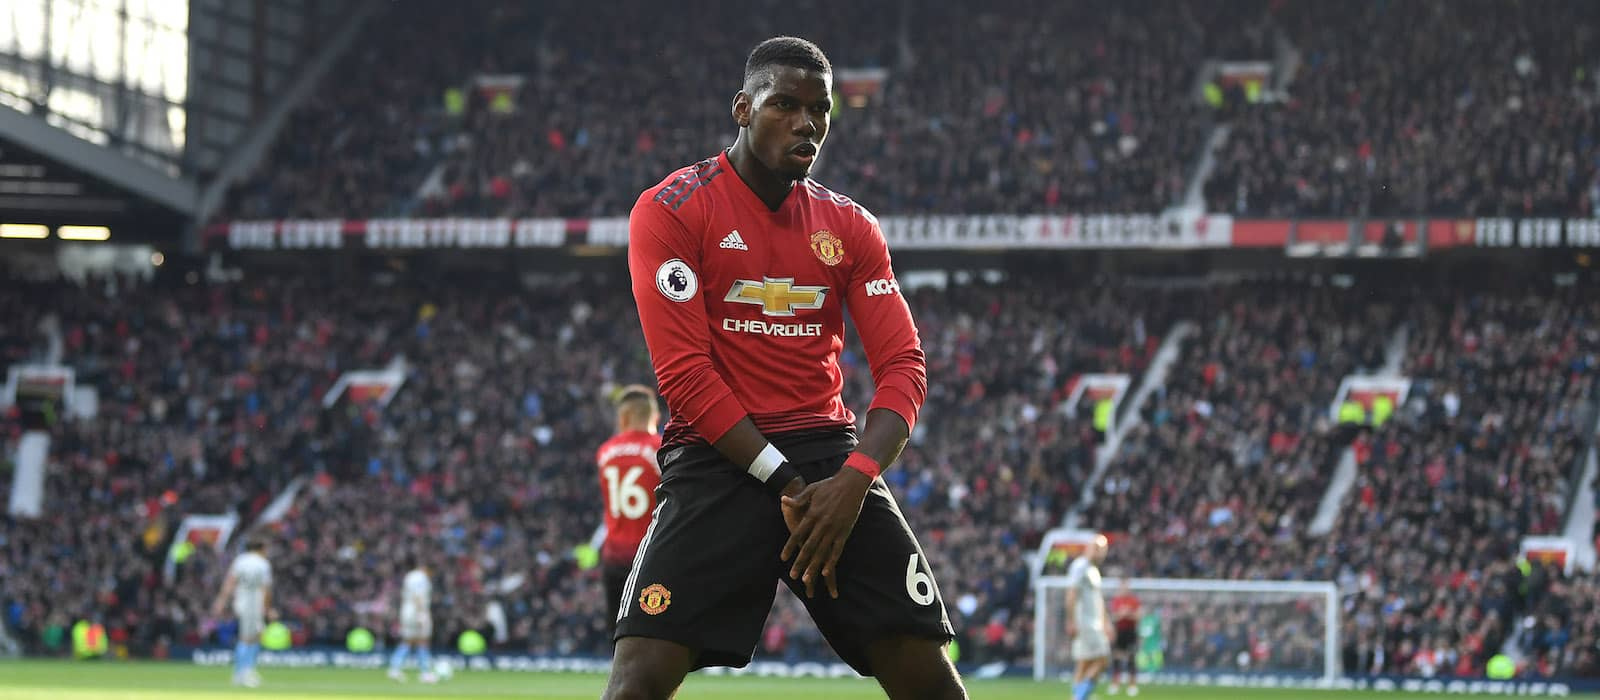 Pogba scored a brace for United this past weekend. (Agency Photo)